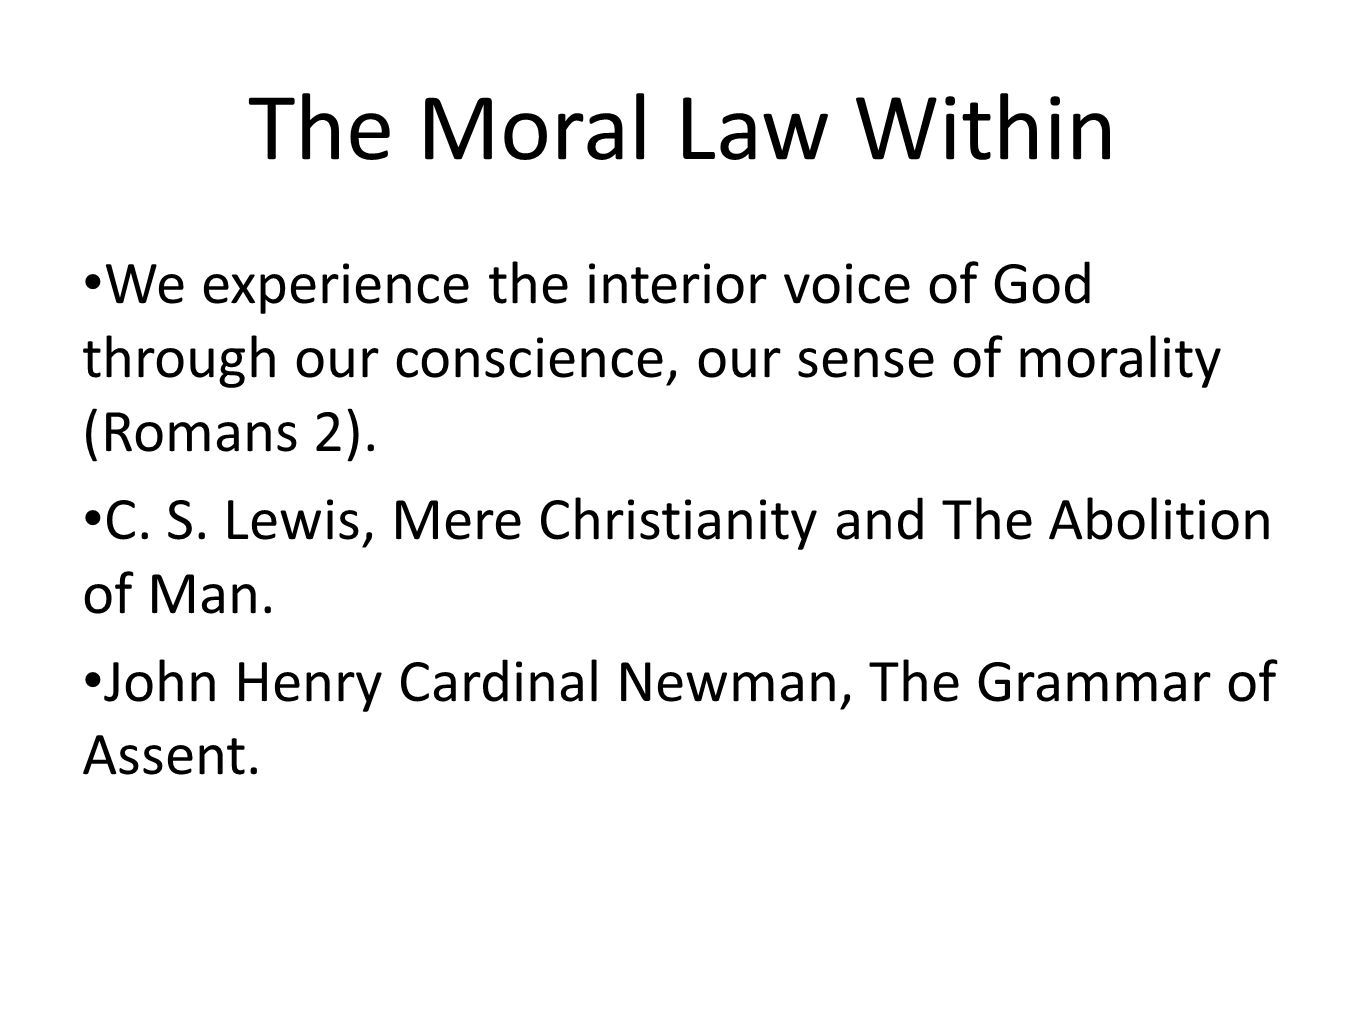 The Moral Law Within We experience the interior voice of God through our conscience, our sense of morality (Romans 2). C. S. Lewis, Mere Christianity